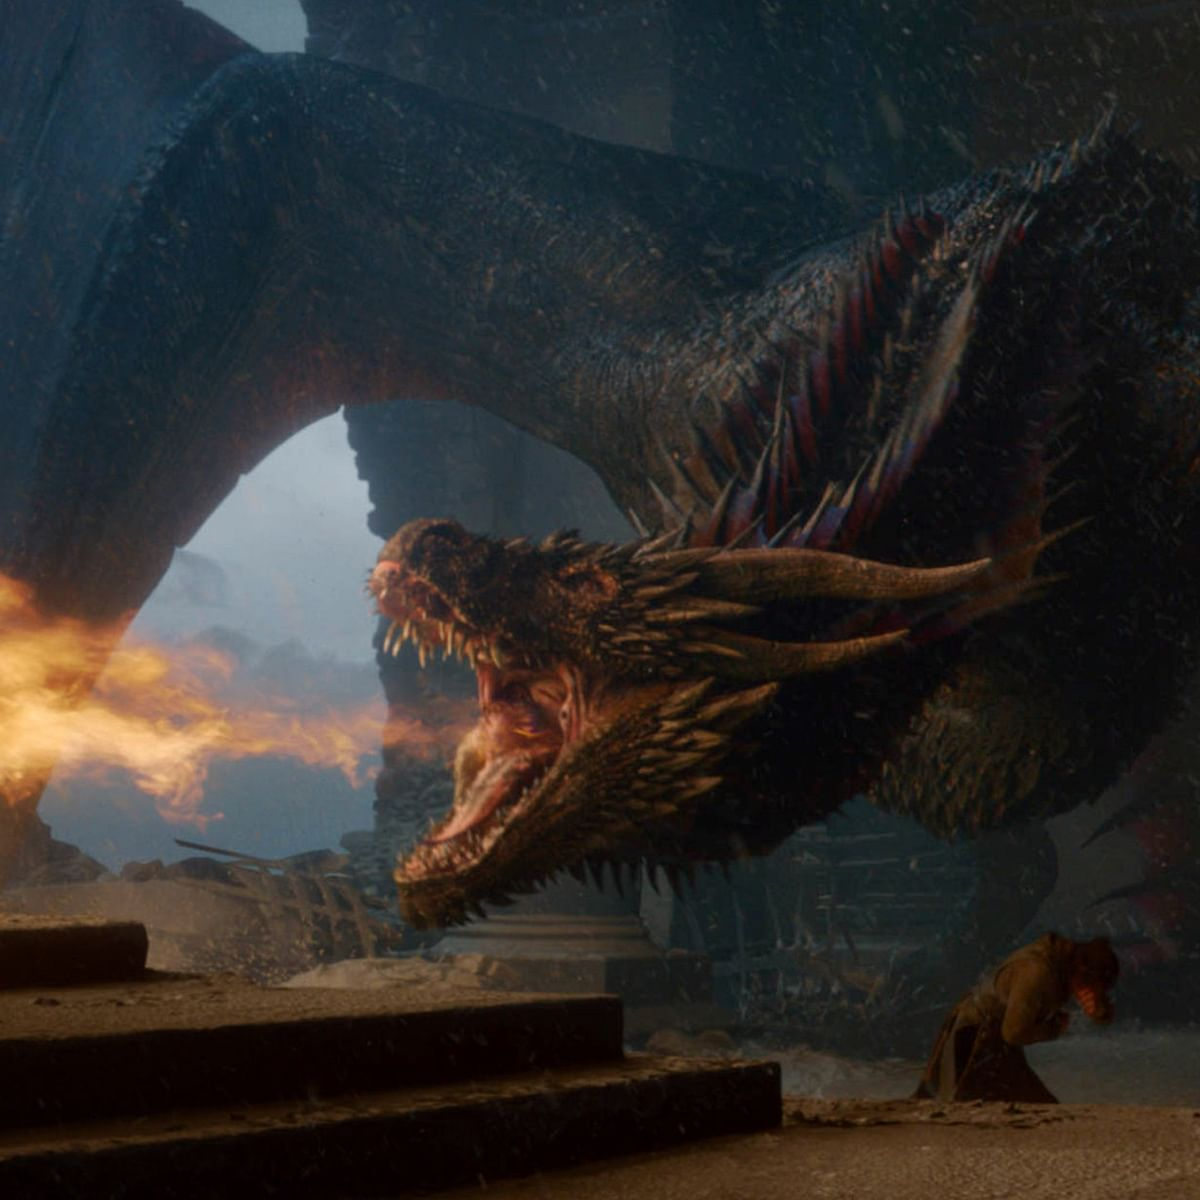 'Game of Thrones' prequel series based on 'Tales of Dunk and Egg' in the works at HBO